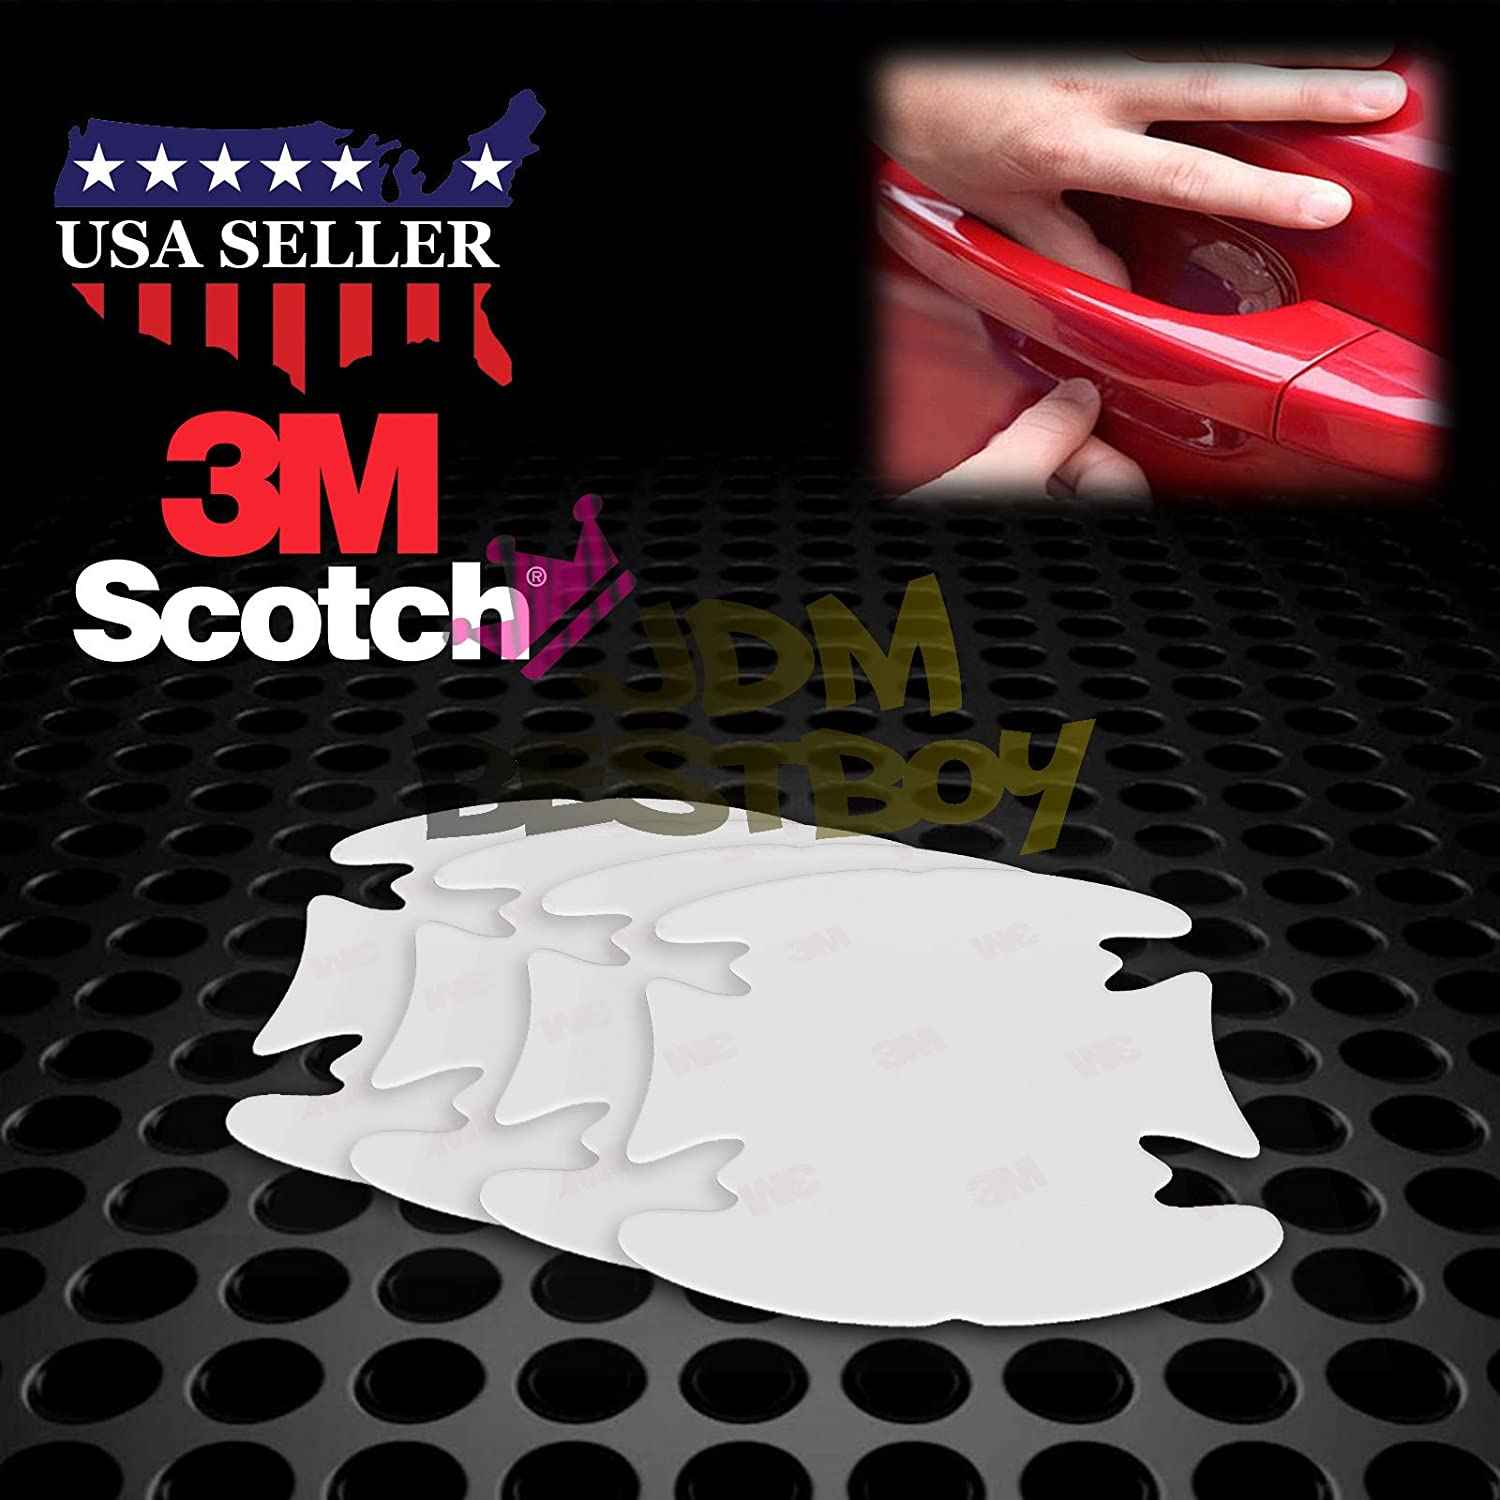 JDMBESTBOY 4PCs 3M Scotchguard Clear Door Cup Handle Paint Scratch Protection Protector Guard Film Bra